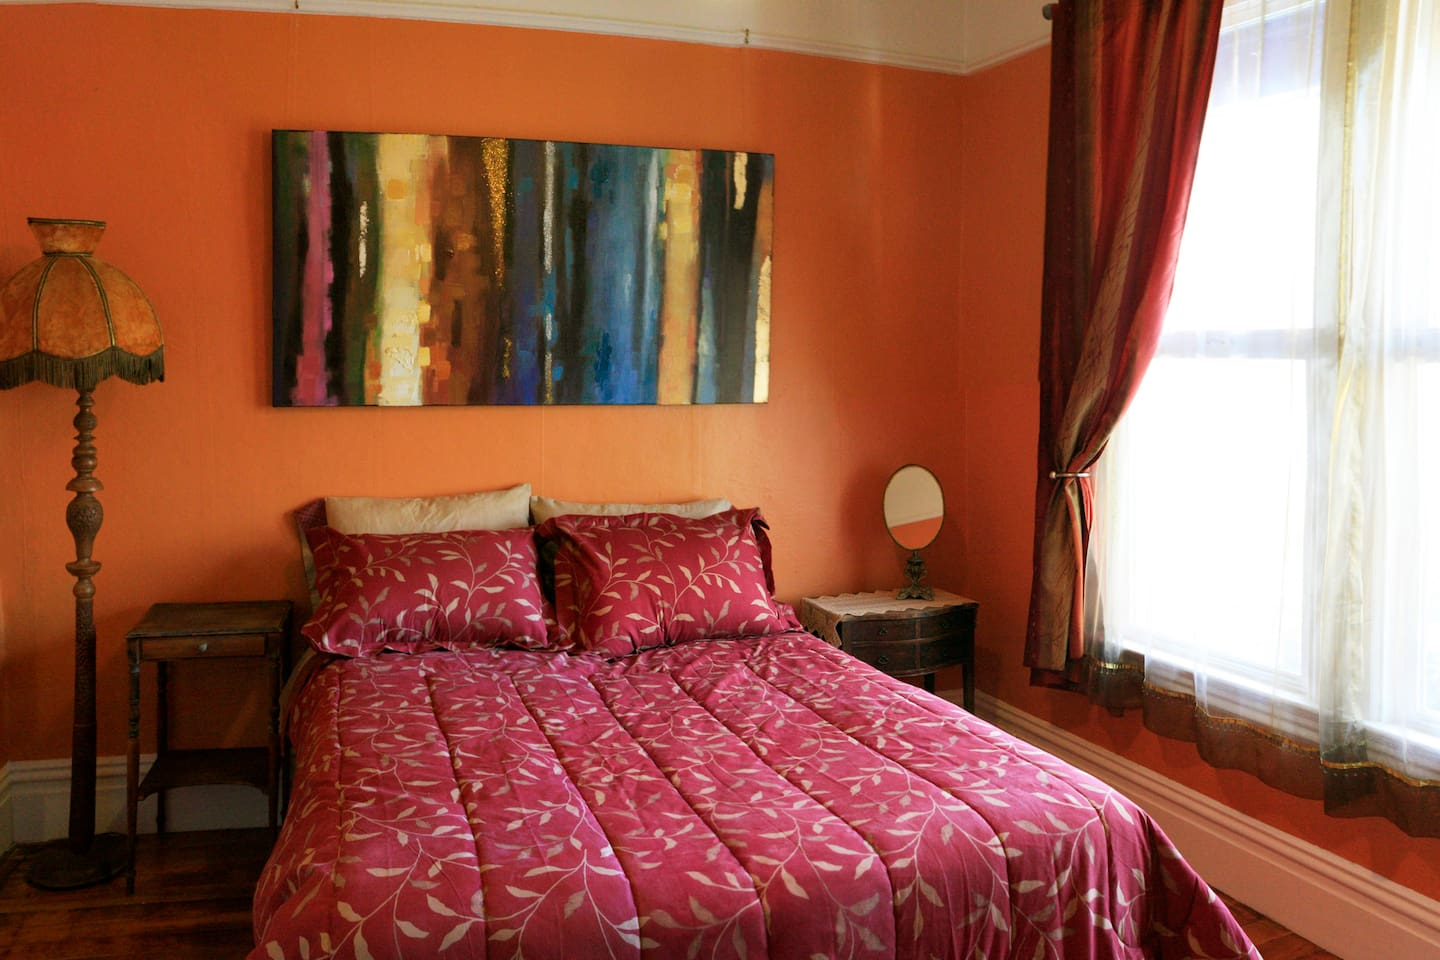 Bedroom with full size bed to accommodate 1-2 people.